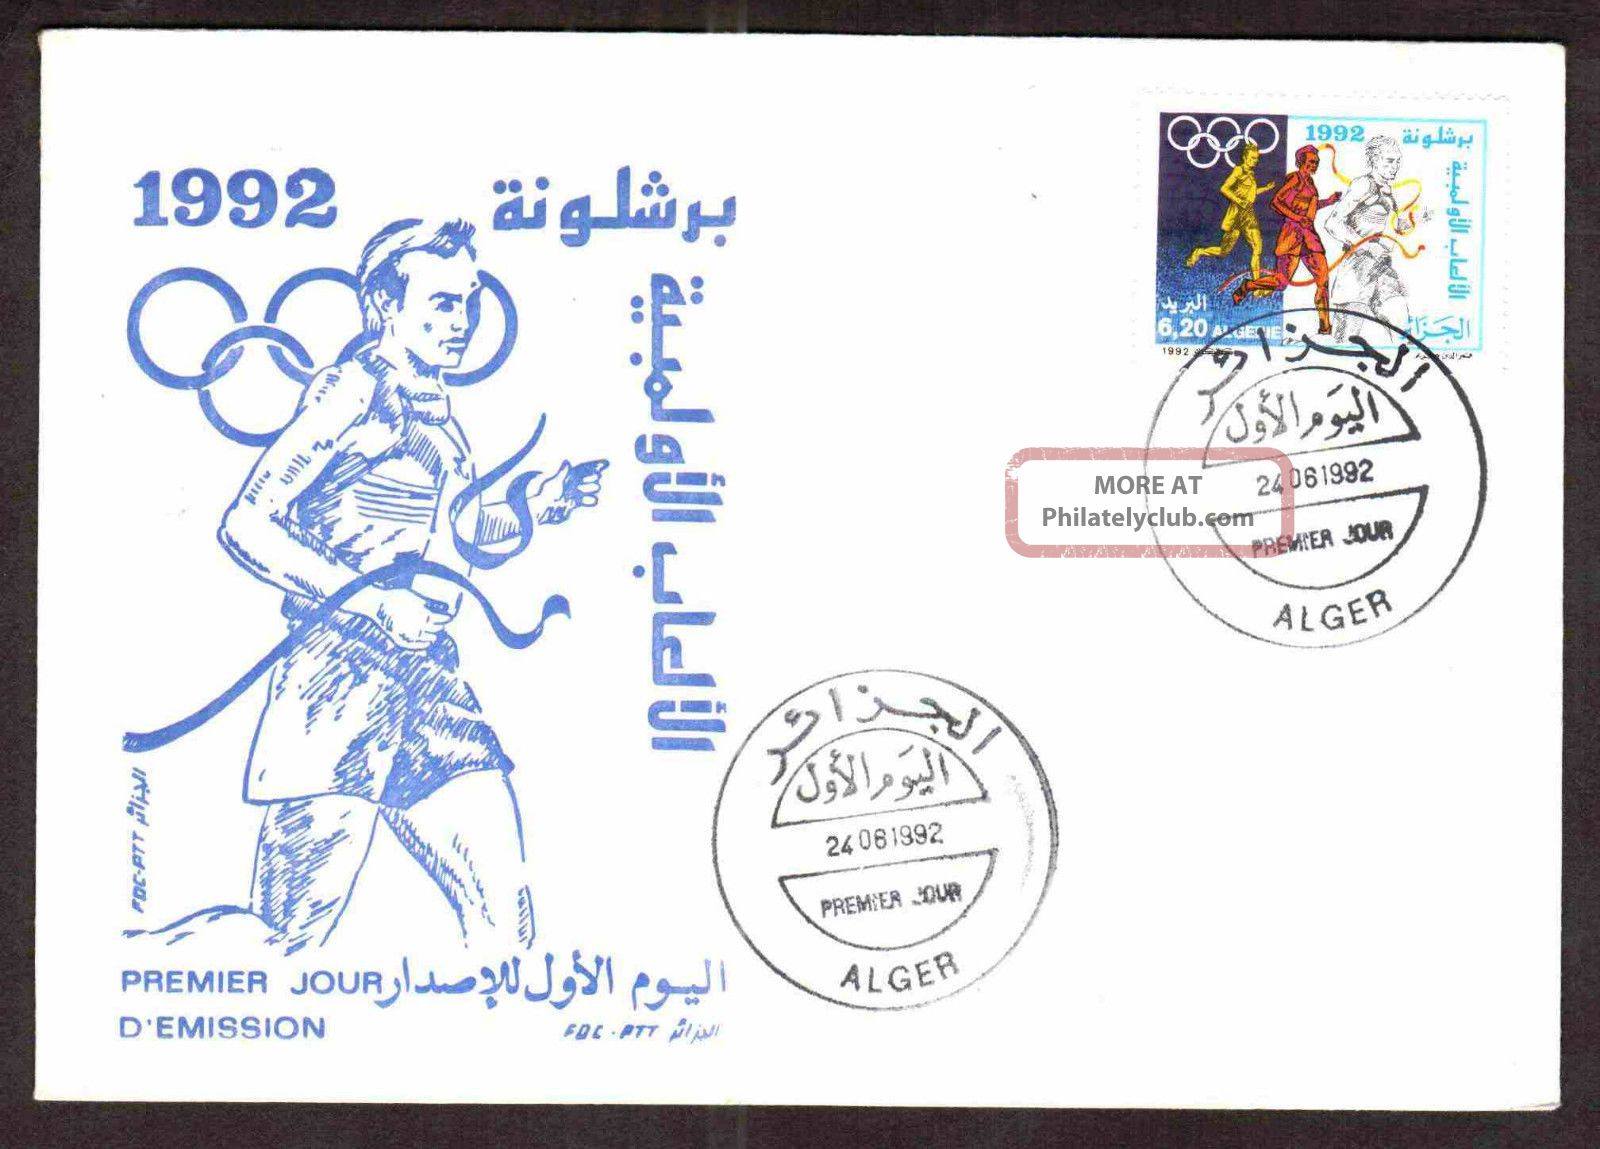 Algeria 1992 - Bercelone Olympics (spain),  Scott 958 - Fdc - Sports photo